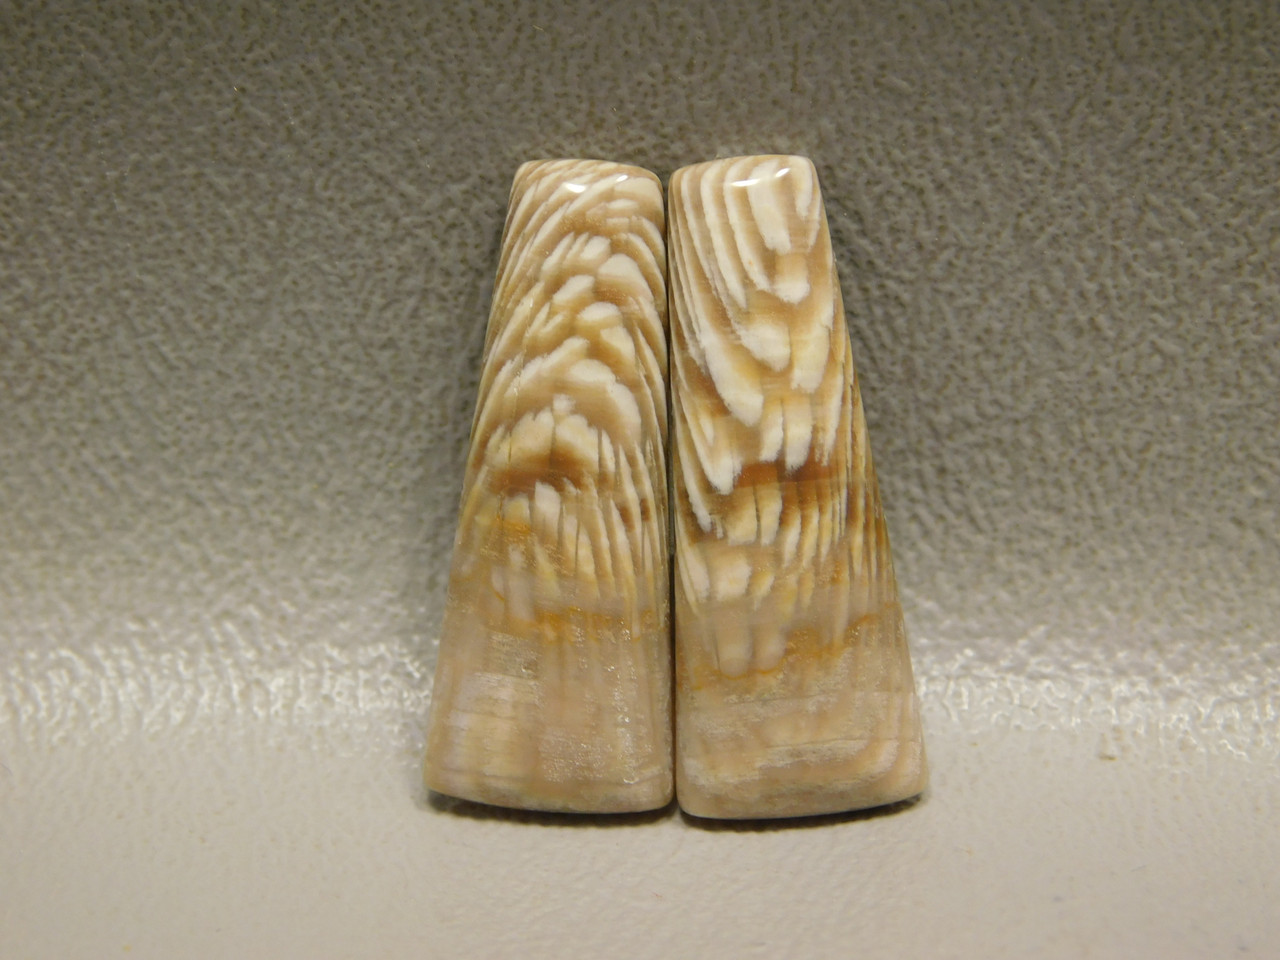 Fossilized Sycamore Wood Matched Pairs Cabochons Badger Creek #17